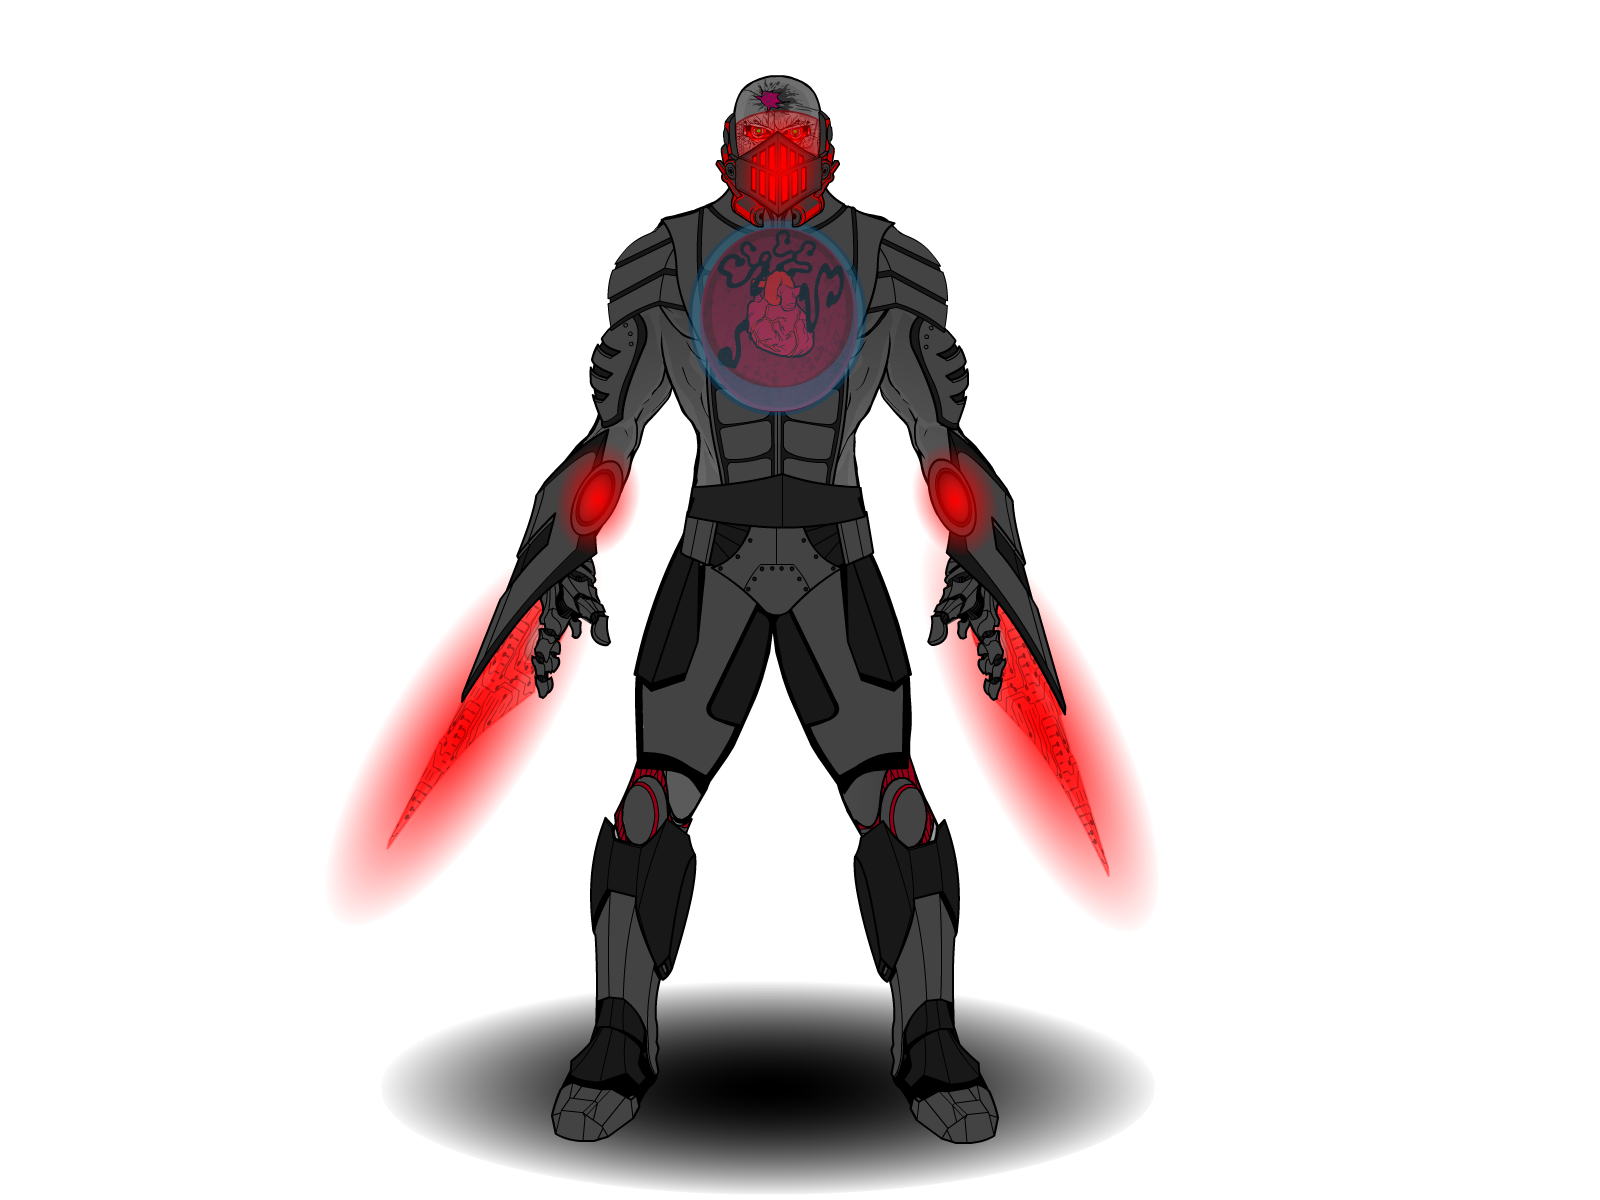 http://www.heromachine.com/wp-content/legacy/forum-image-uploads/nha247/2012/04/Cyborg.png